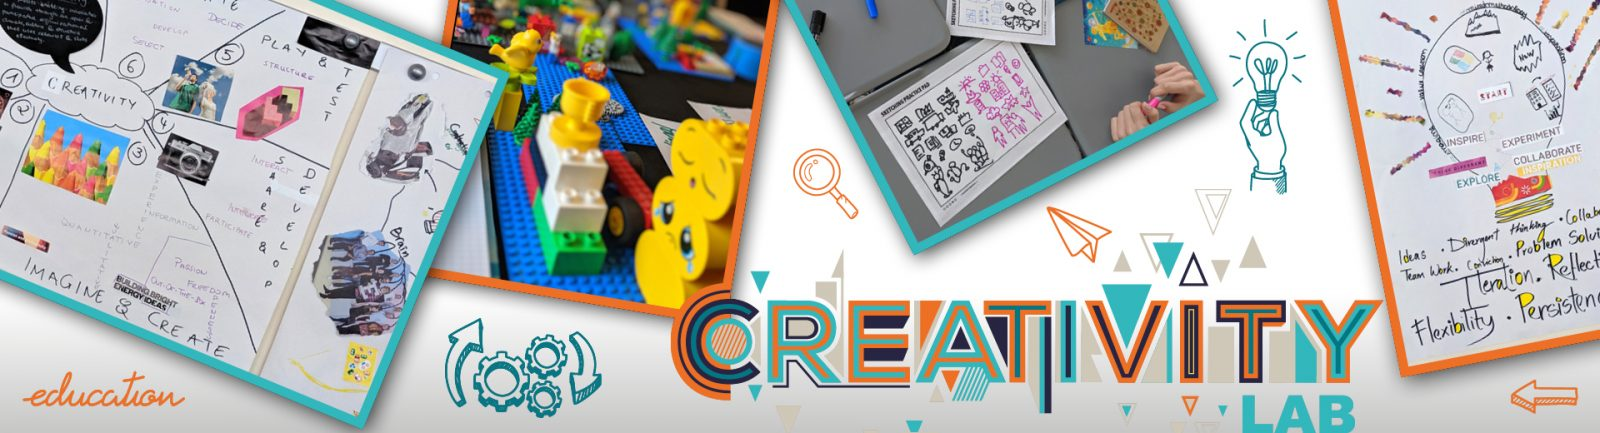 creativity_lab